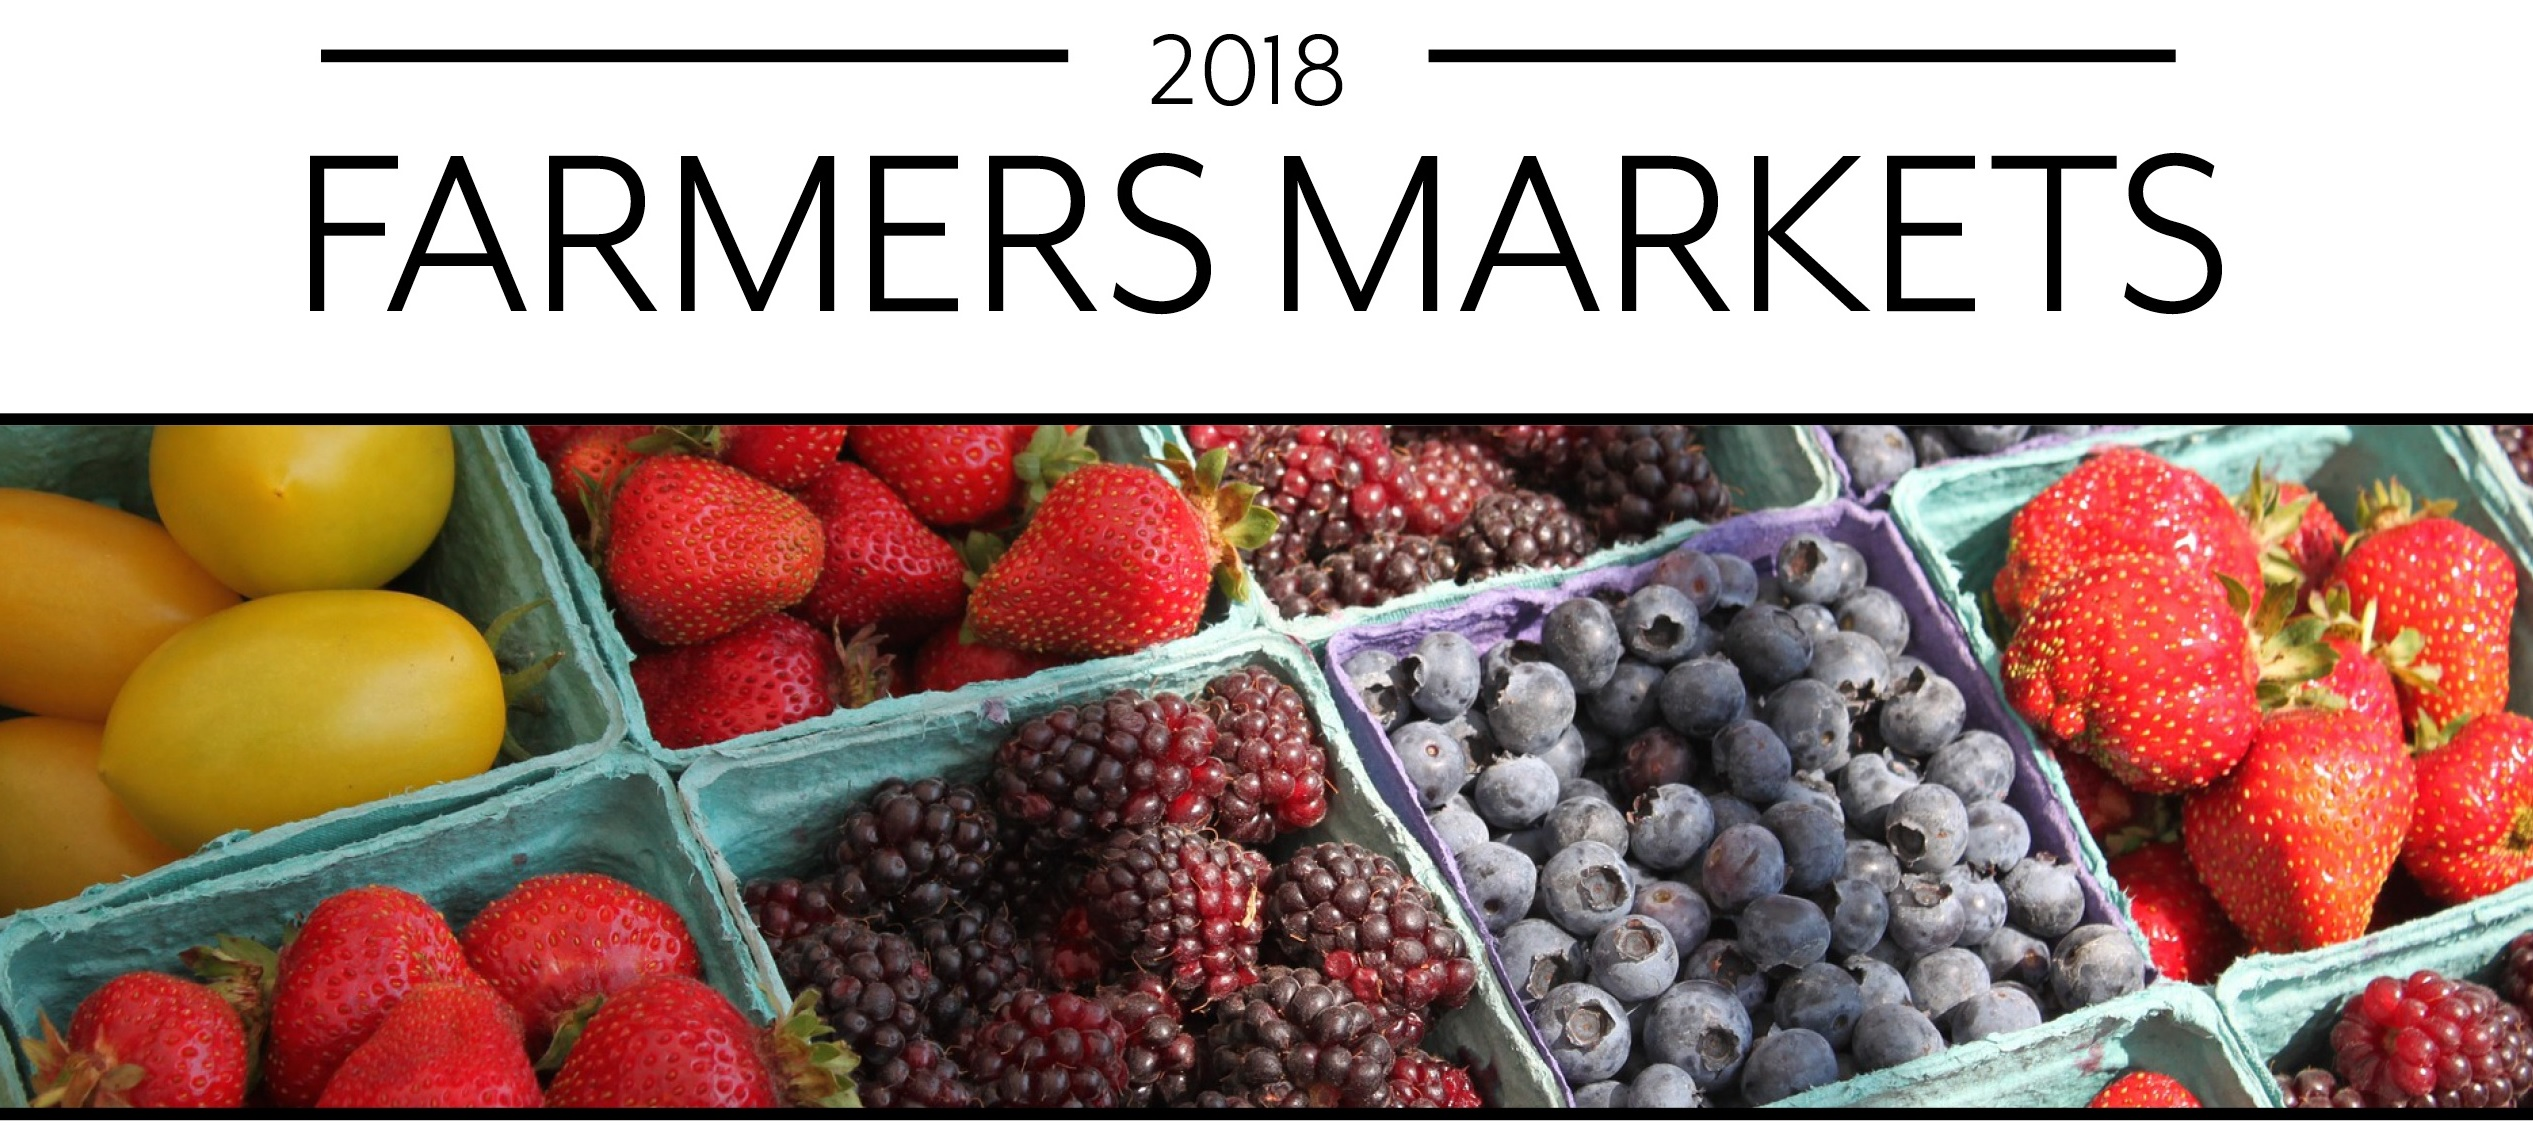 2018 Farmers Market Flyer3